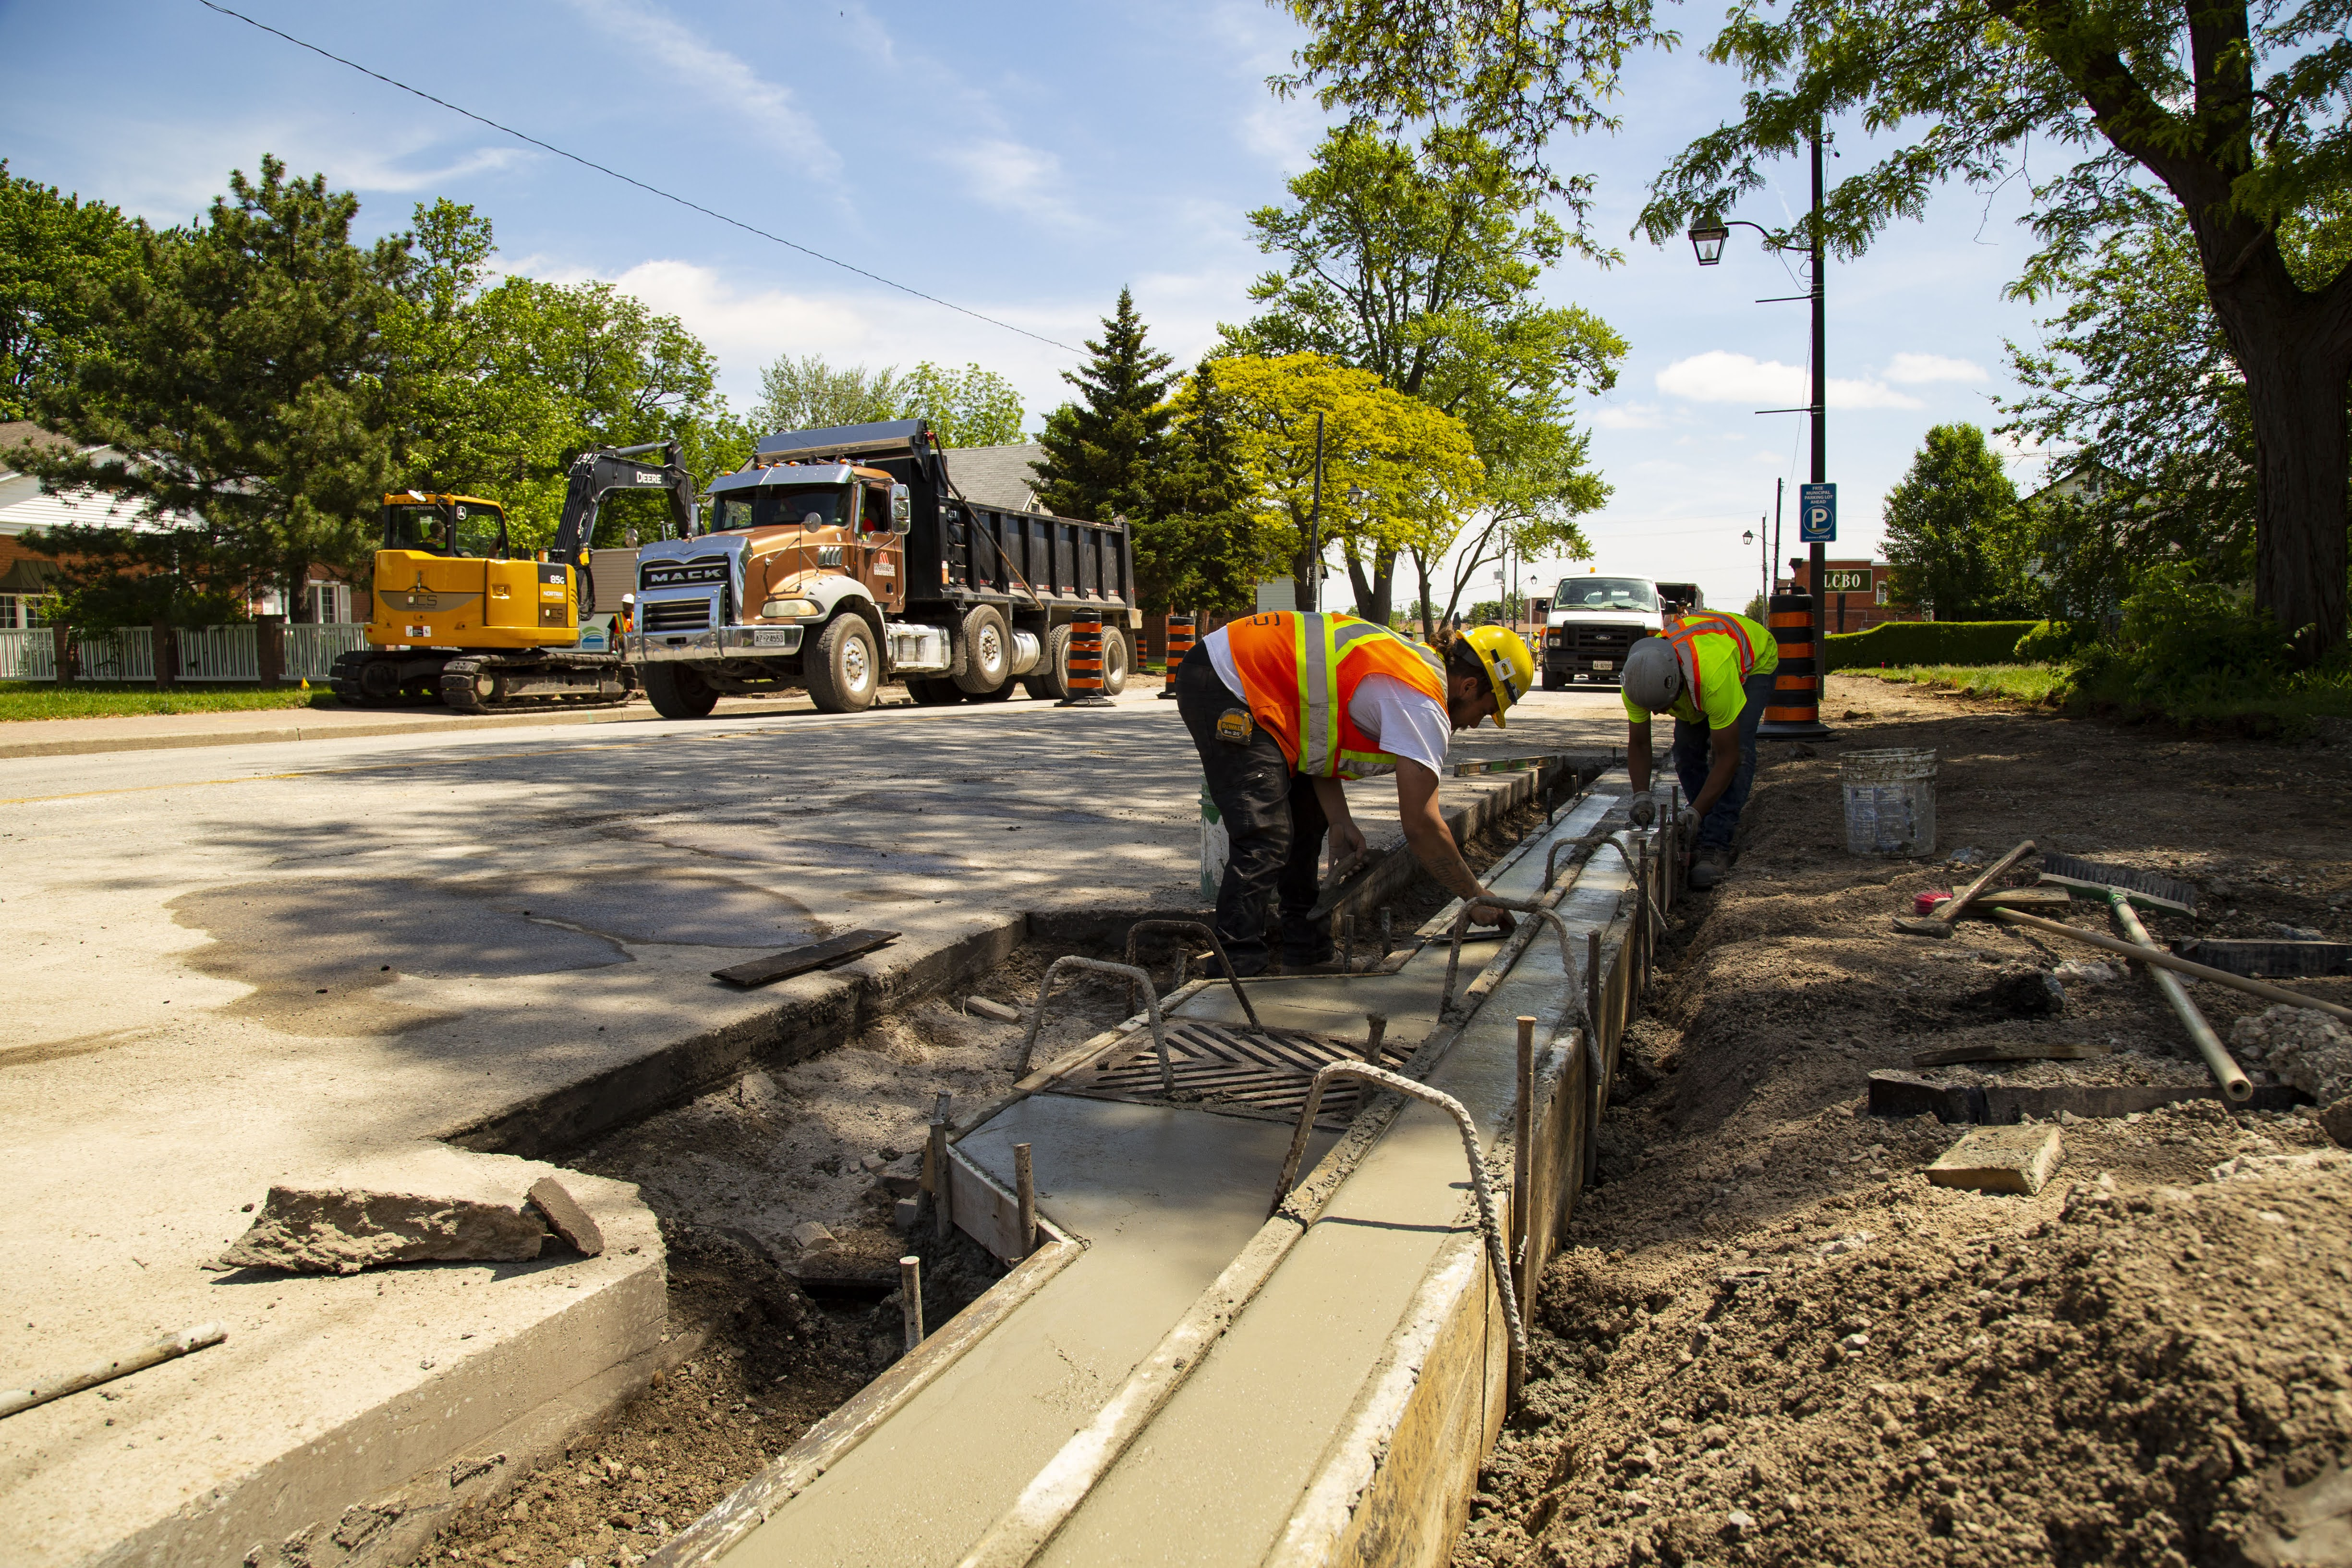 Construction worker working on a concrete curb as part of the Harrow Streetscape project.